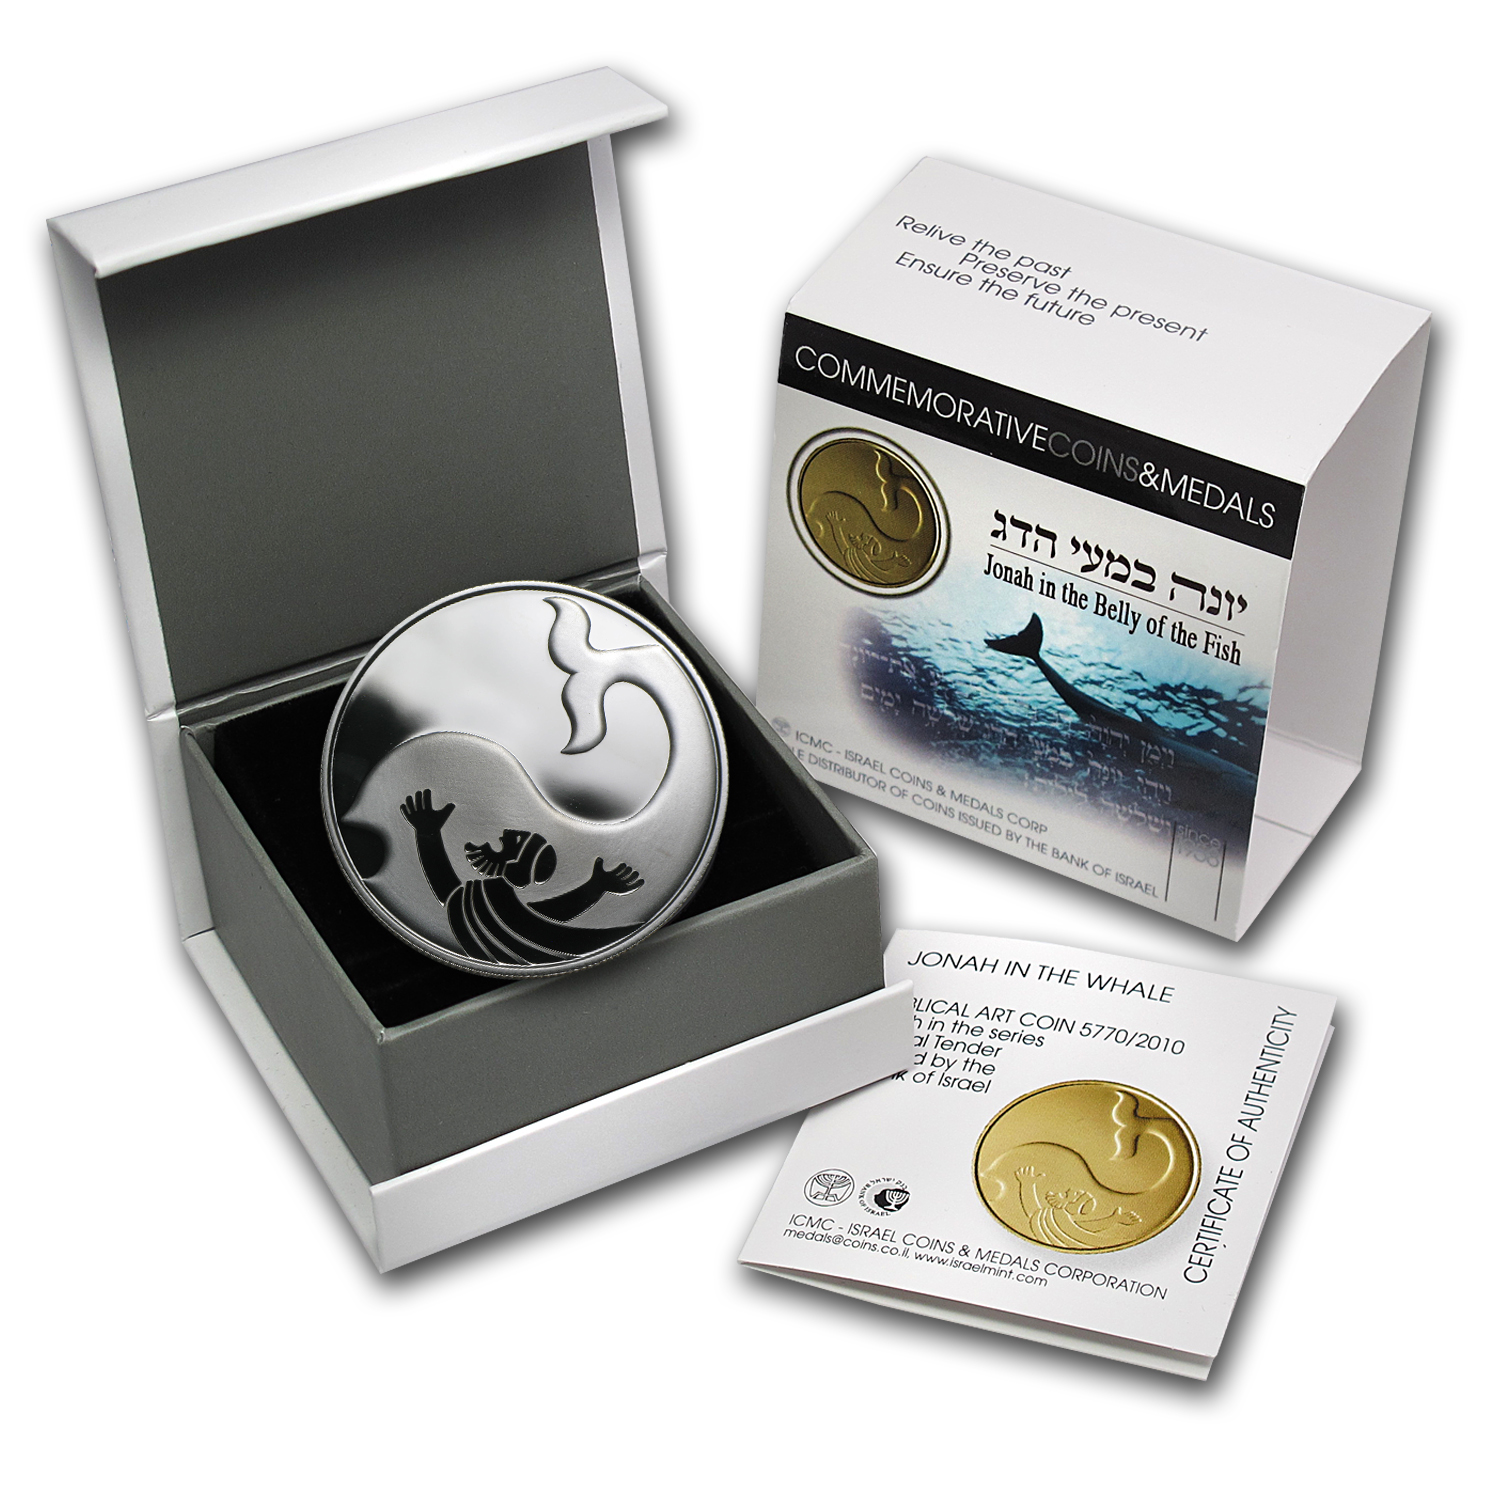 2010 0.857 oz Silver Israel Jonah & Whale 2 NIS Proof